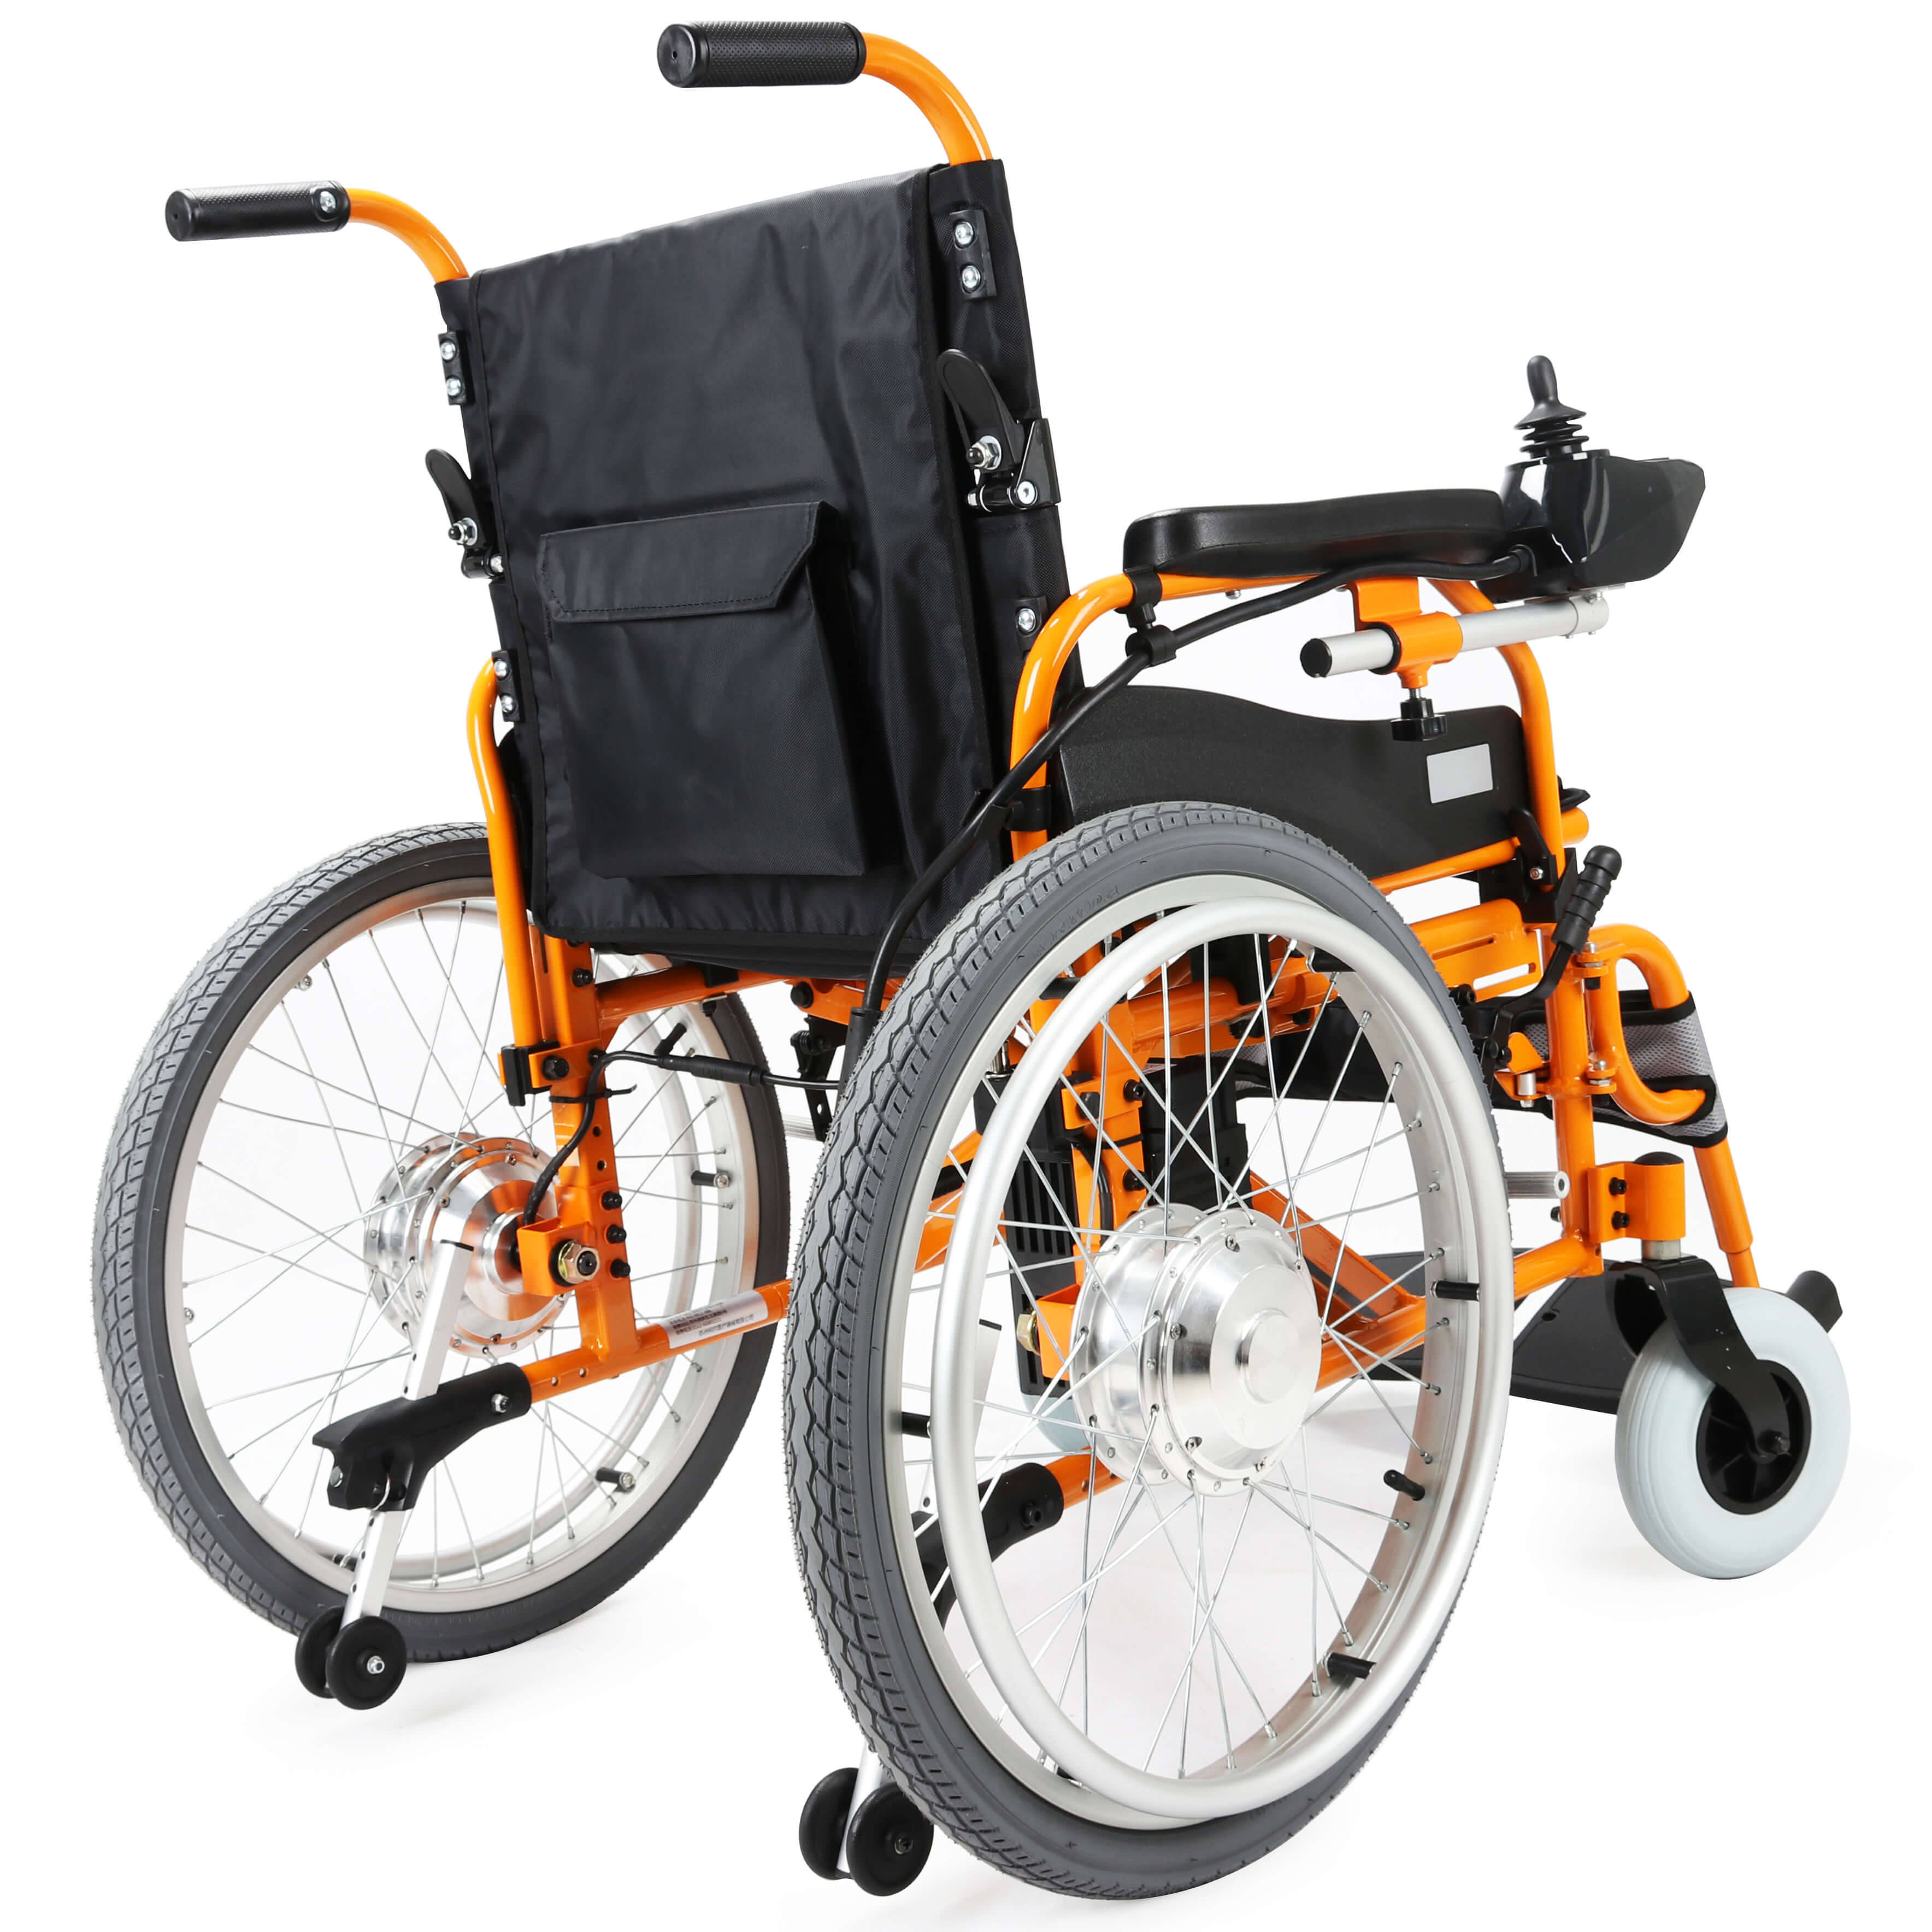 It is good to choose lead-acid batteries for electric wheelchairs or lithium batteries